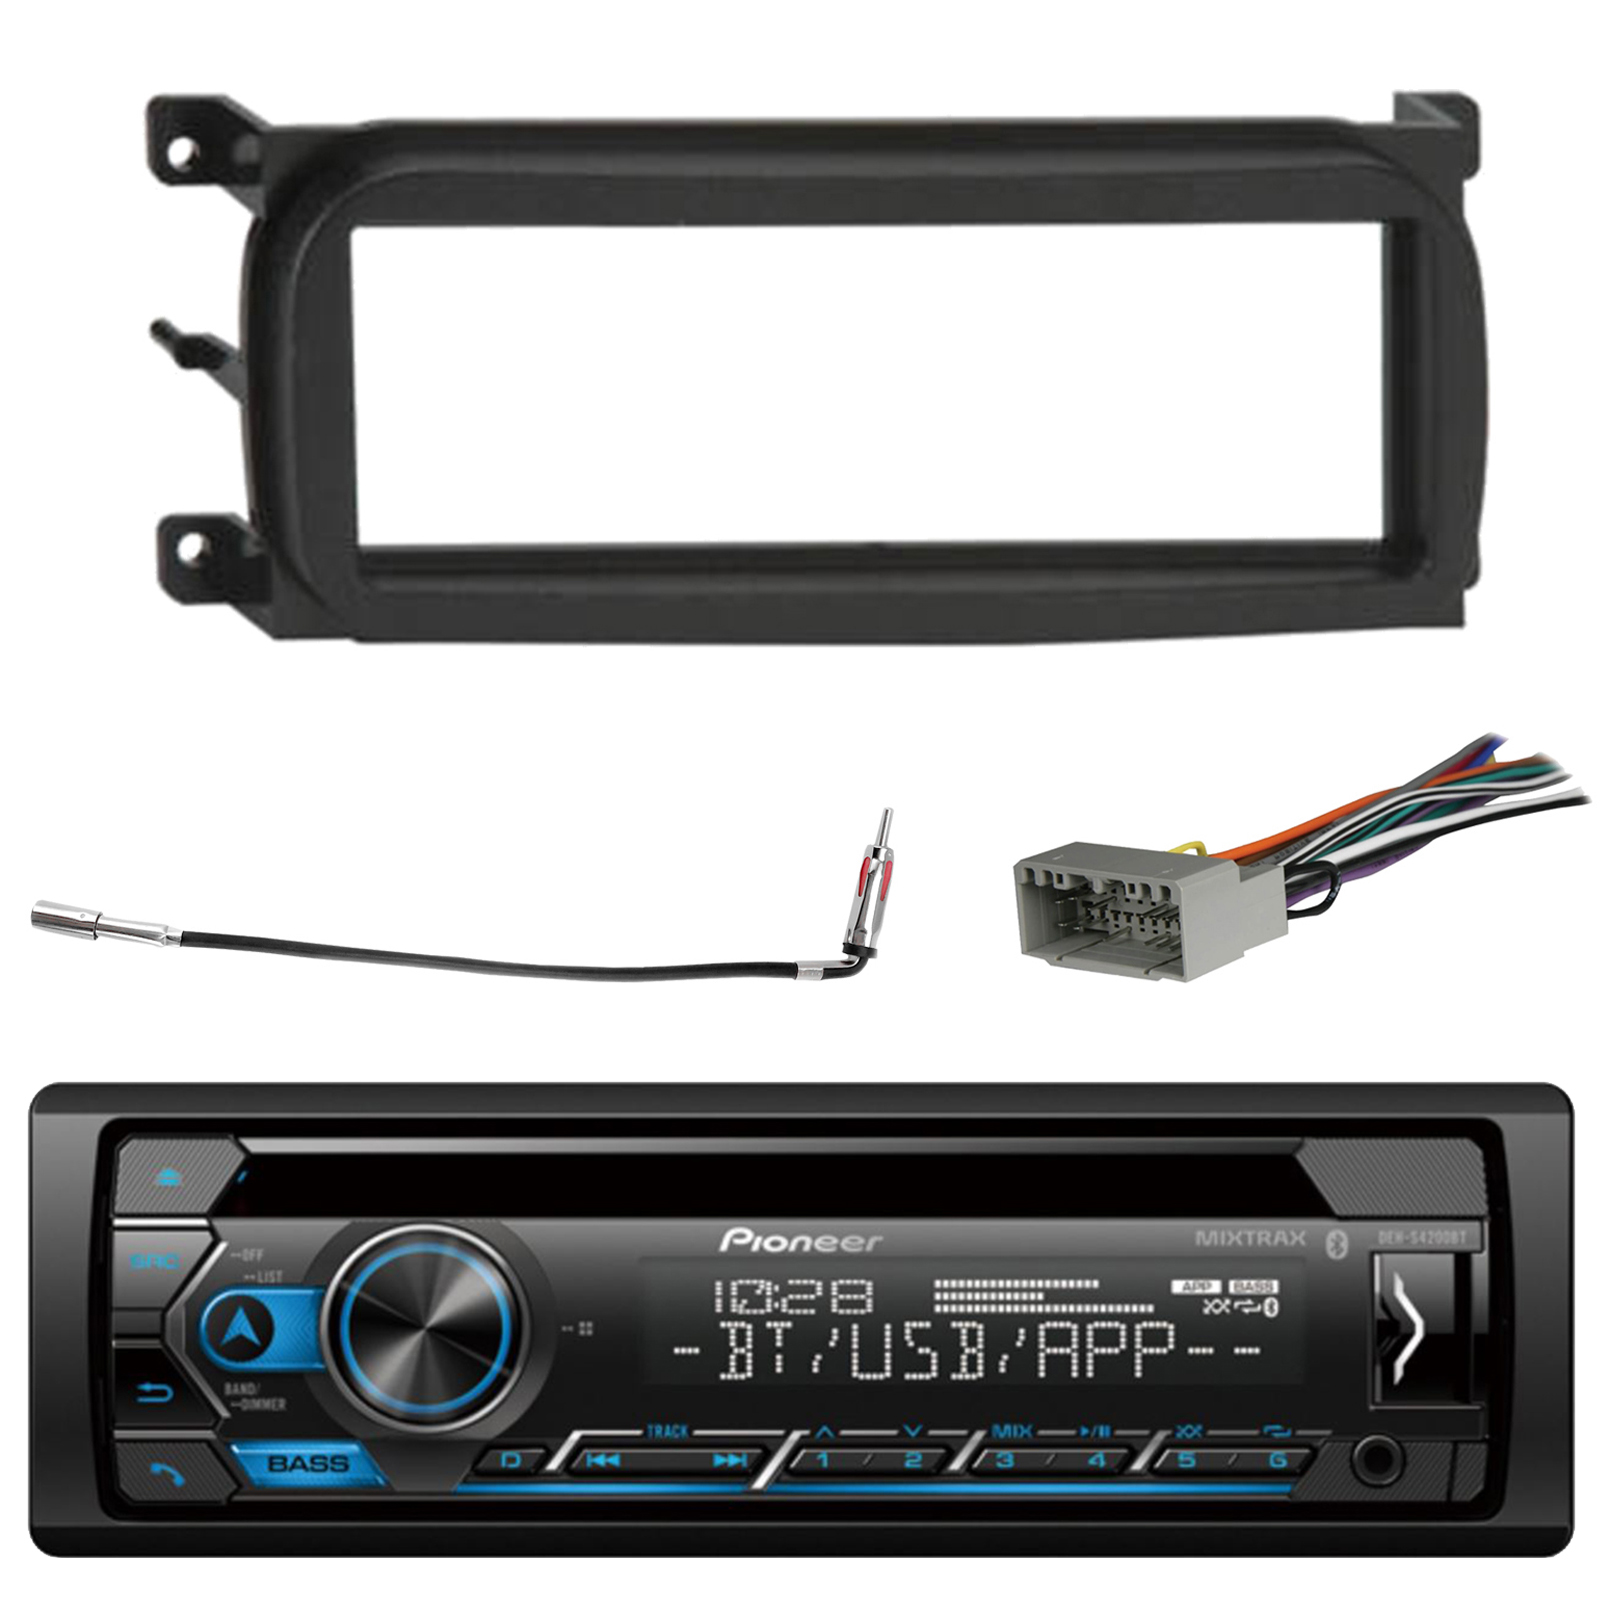 Pioneer DEH-S4100BT Single Din Car CD Stereo Radio Install Dash Mount Kit